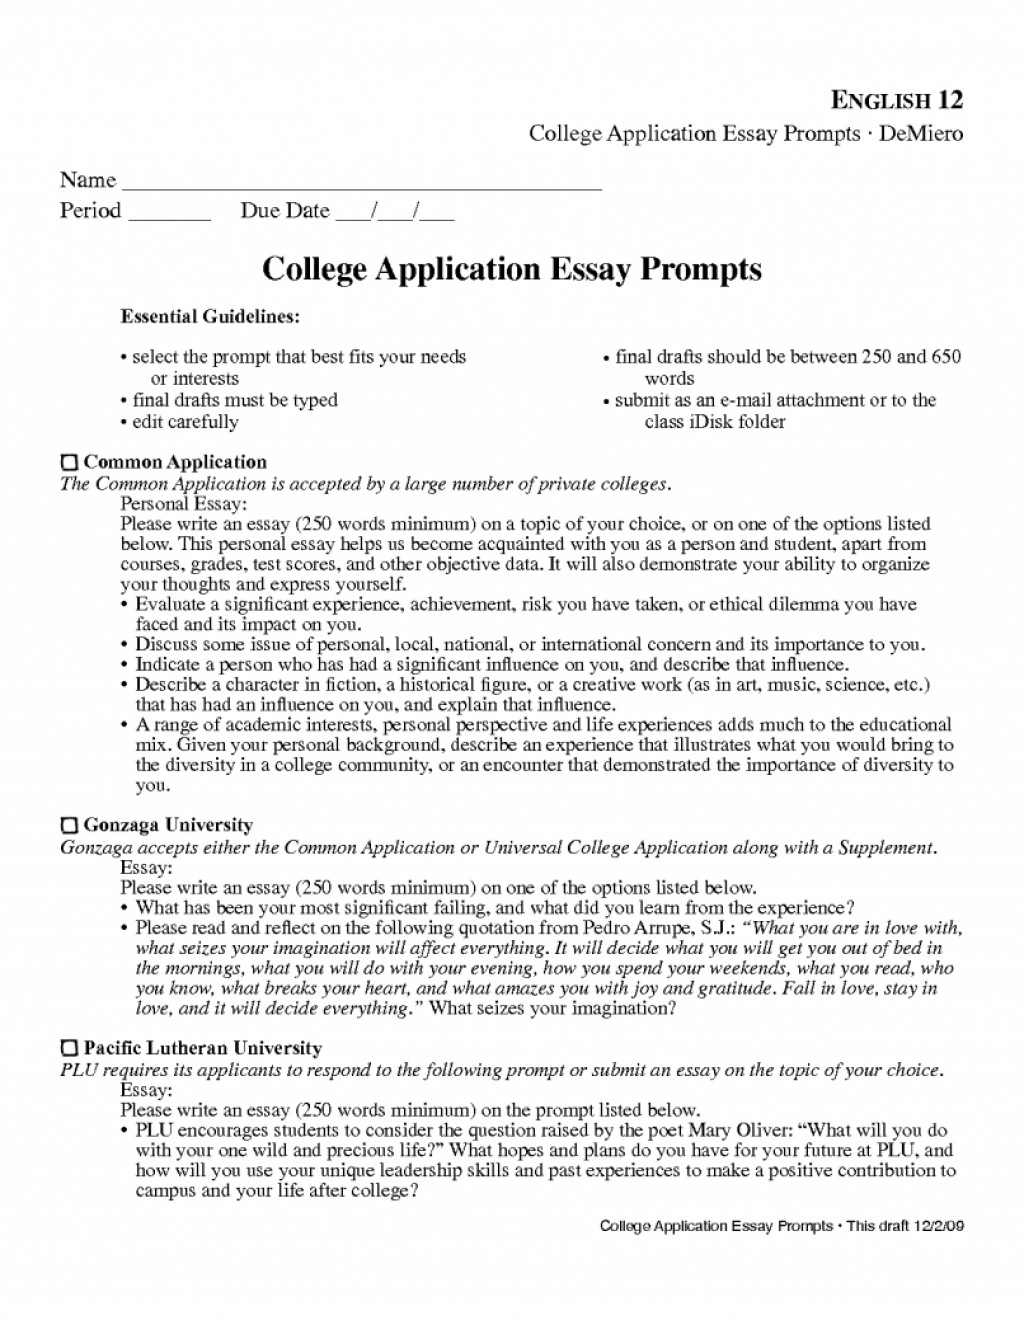 002 The Common App Essay Prompts Poemdoc Or Best College Using Quotes In Essays Quotesgram Admission L Ucf Prompt Boston Uc Harvard Texas Mit Amherst Pomona Frightening Topics 2017 Ideas Large